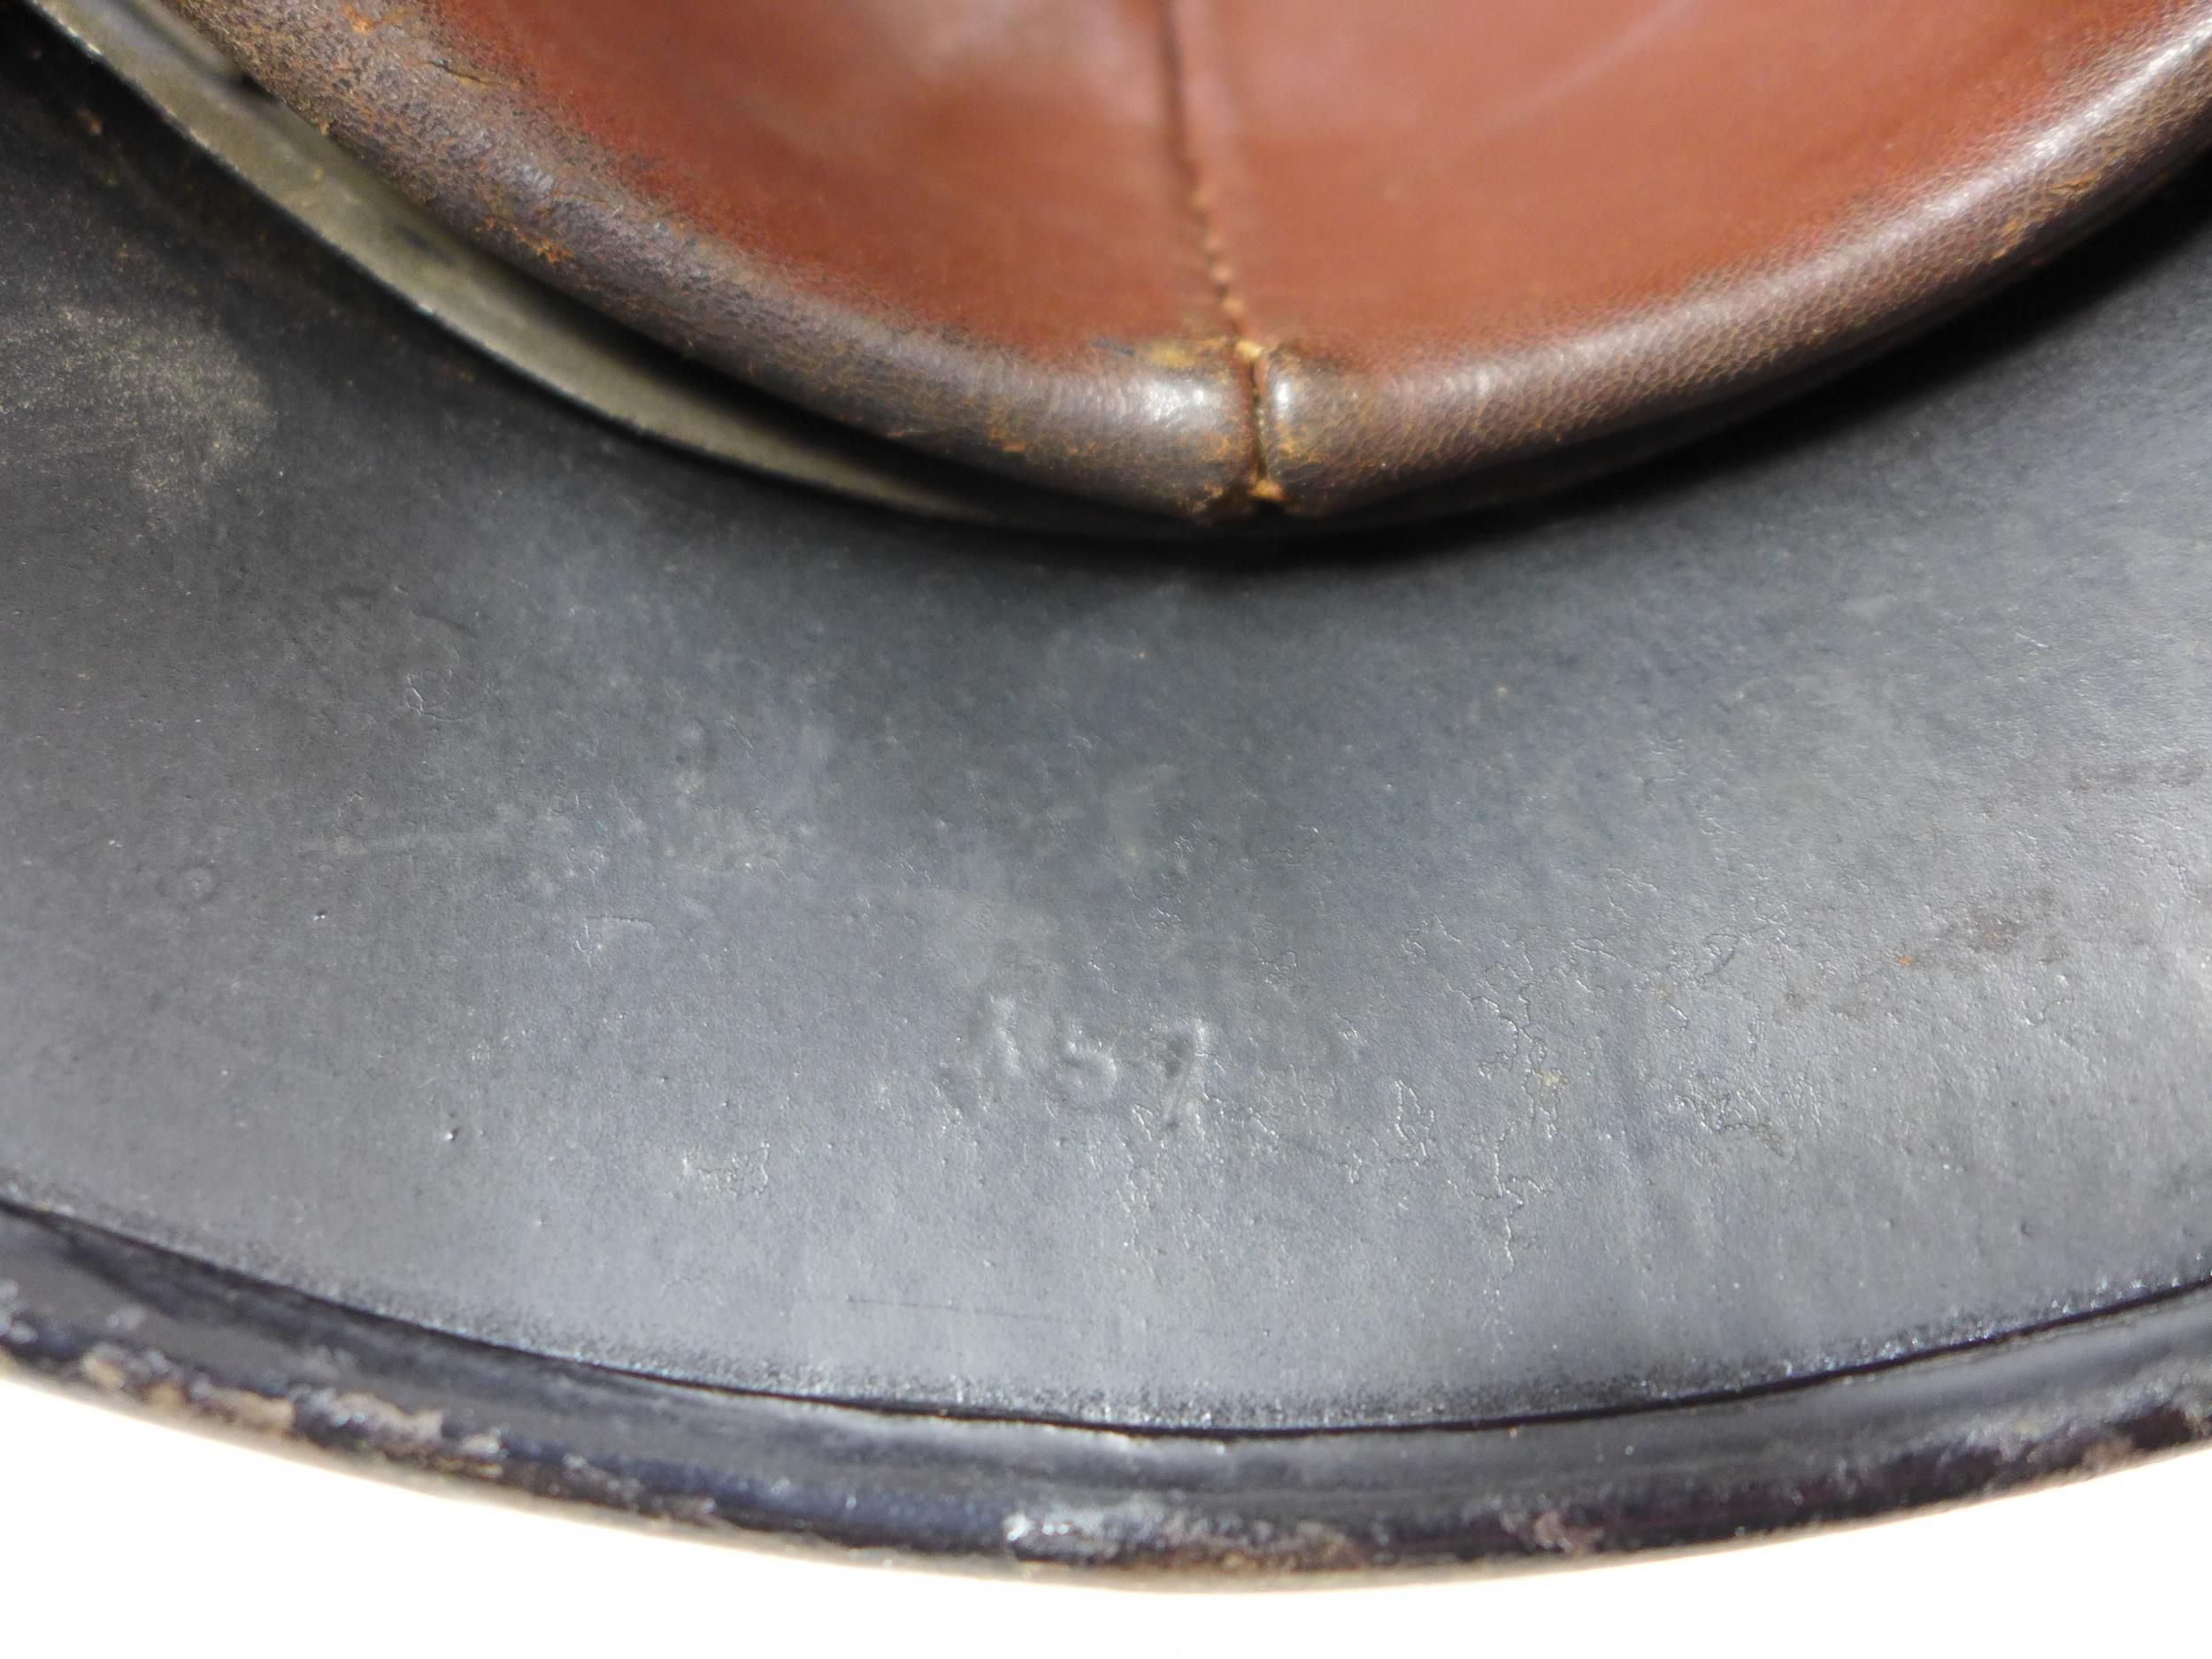 A GERMAN BLACK PAINTED METAL HELMET WITH SS RUNES AND SWASTIKA DECALS - Image 5 of 8